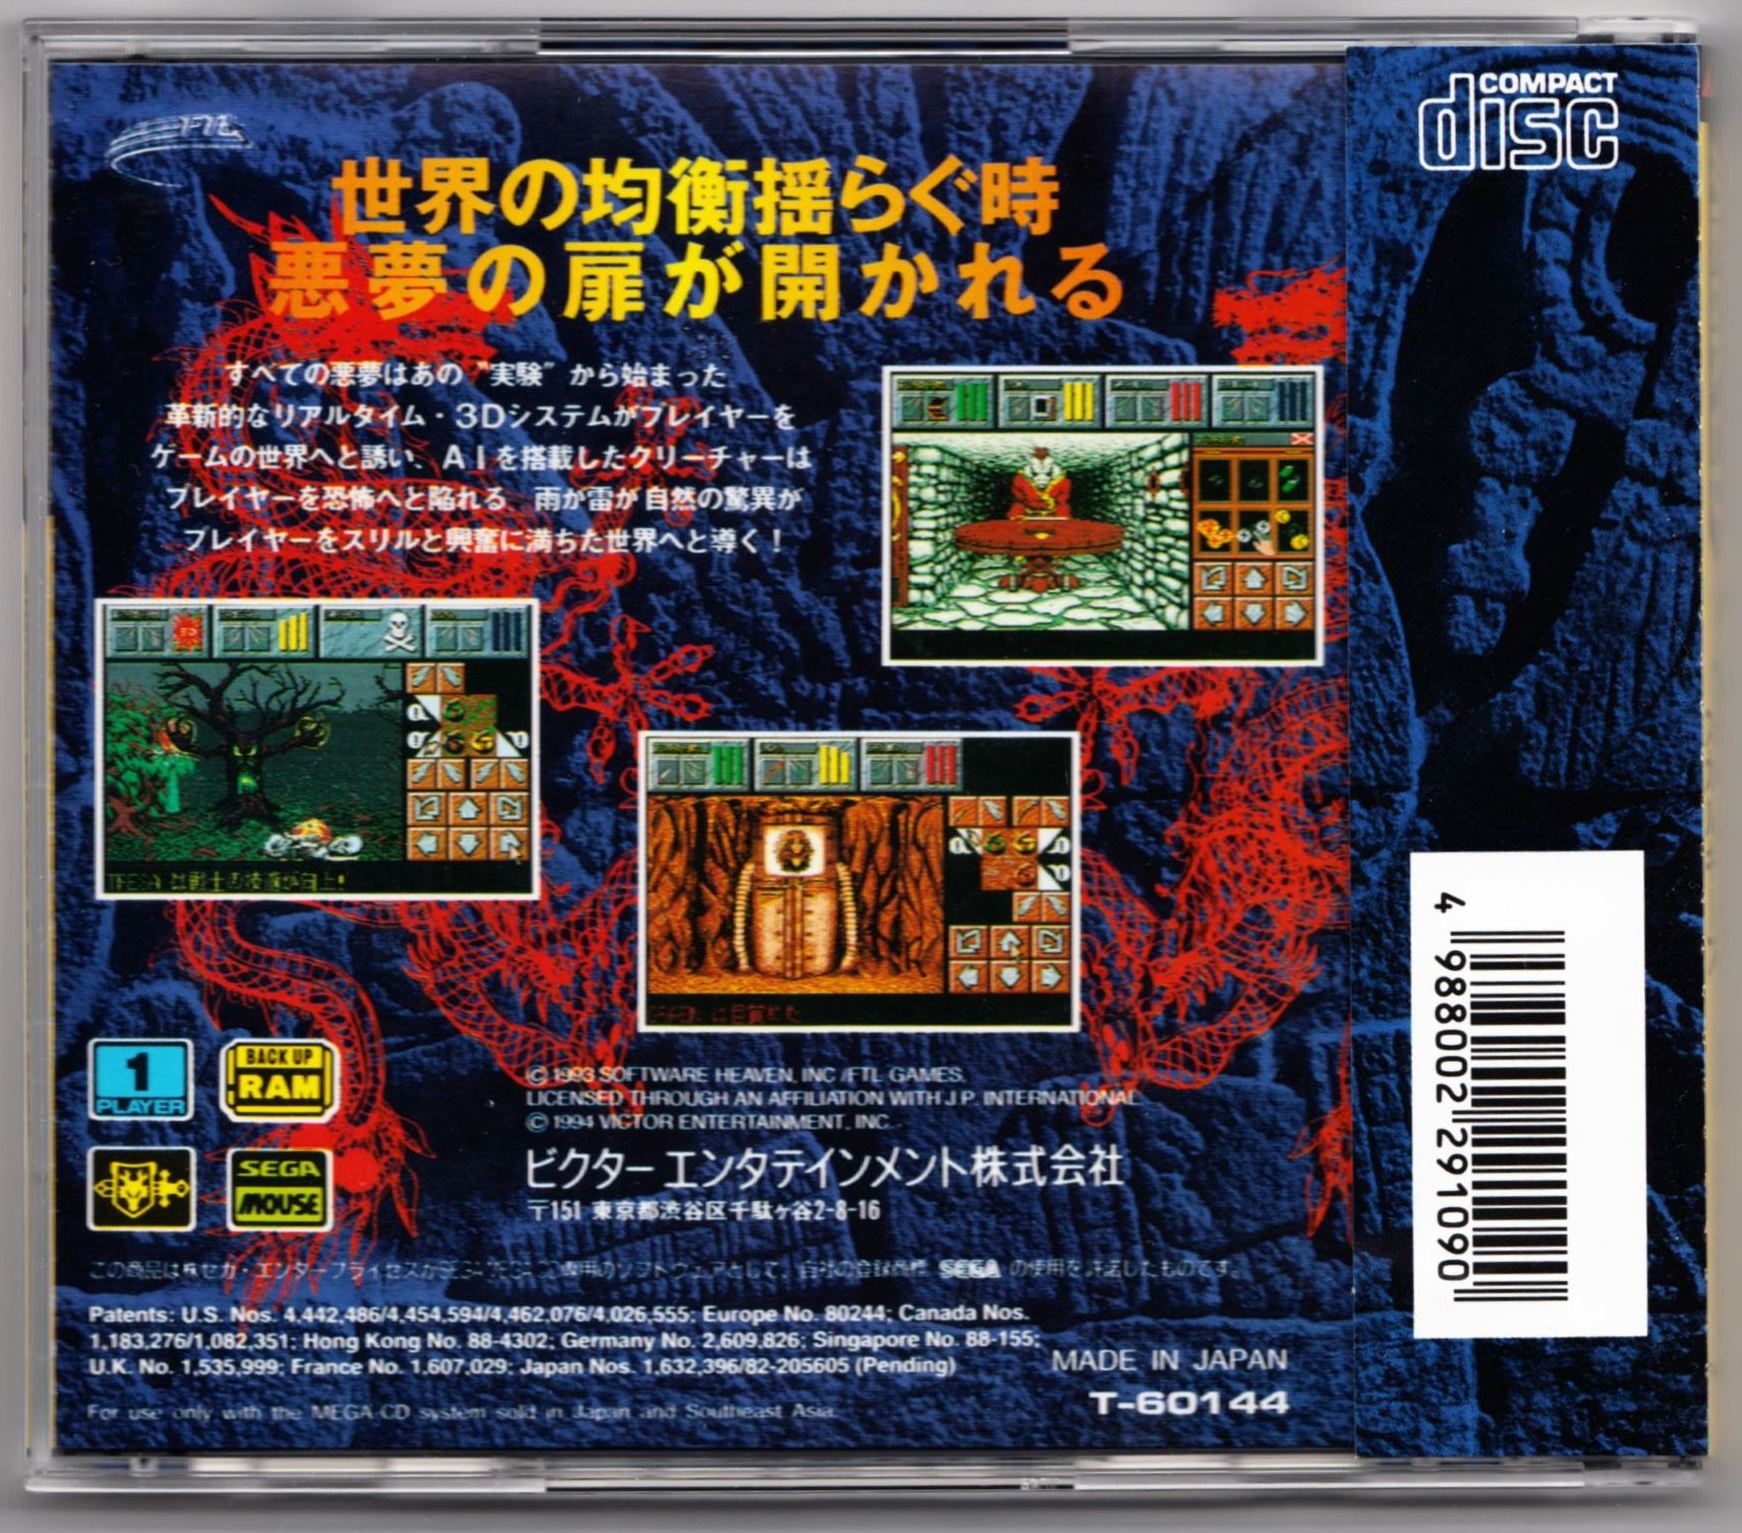 Game - Dungeon Master II - JP - Mega CD - Box - Back - Scan